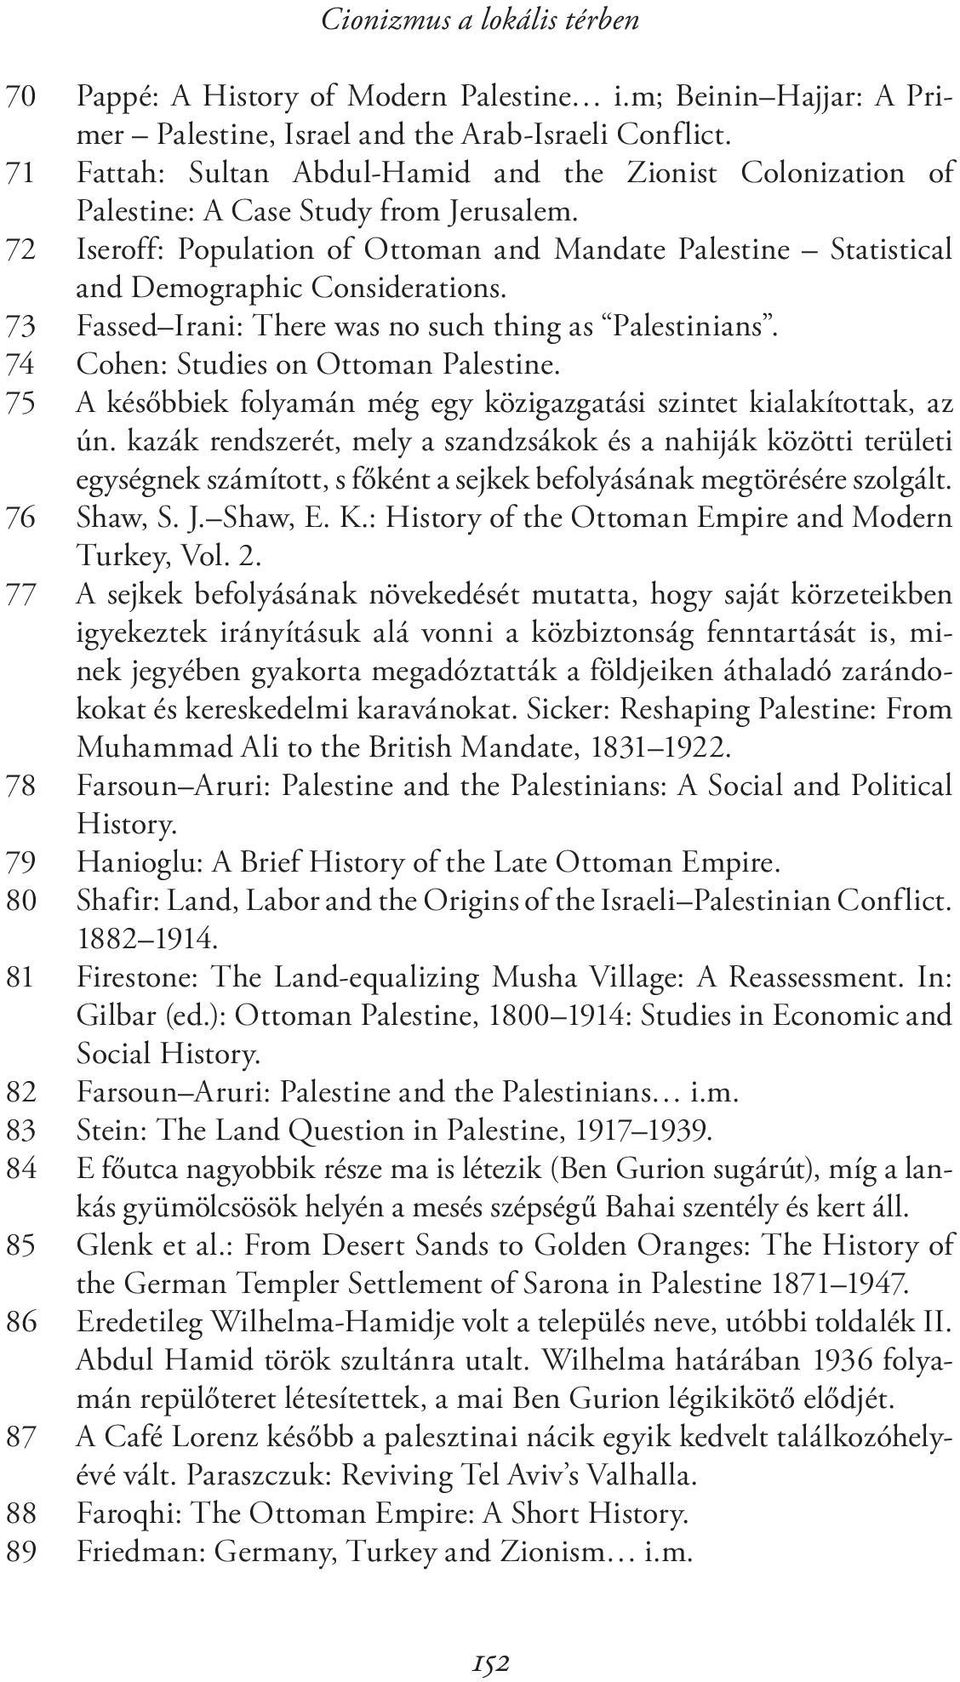 72 Iseroff: Population of Ottoman and Mandate Palestine Statistical and Demographic Considerations. 73 Fassed Irani: There was no such thing as Palestinians. 74 Cohen: Studies on Ottoman Palestine.